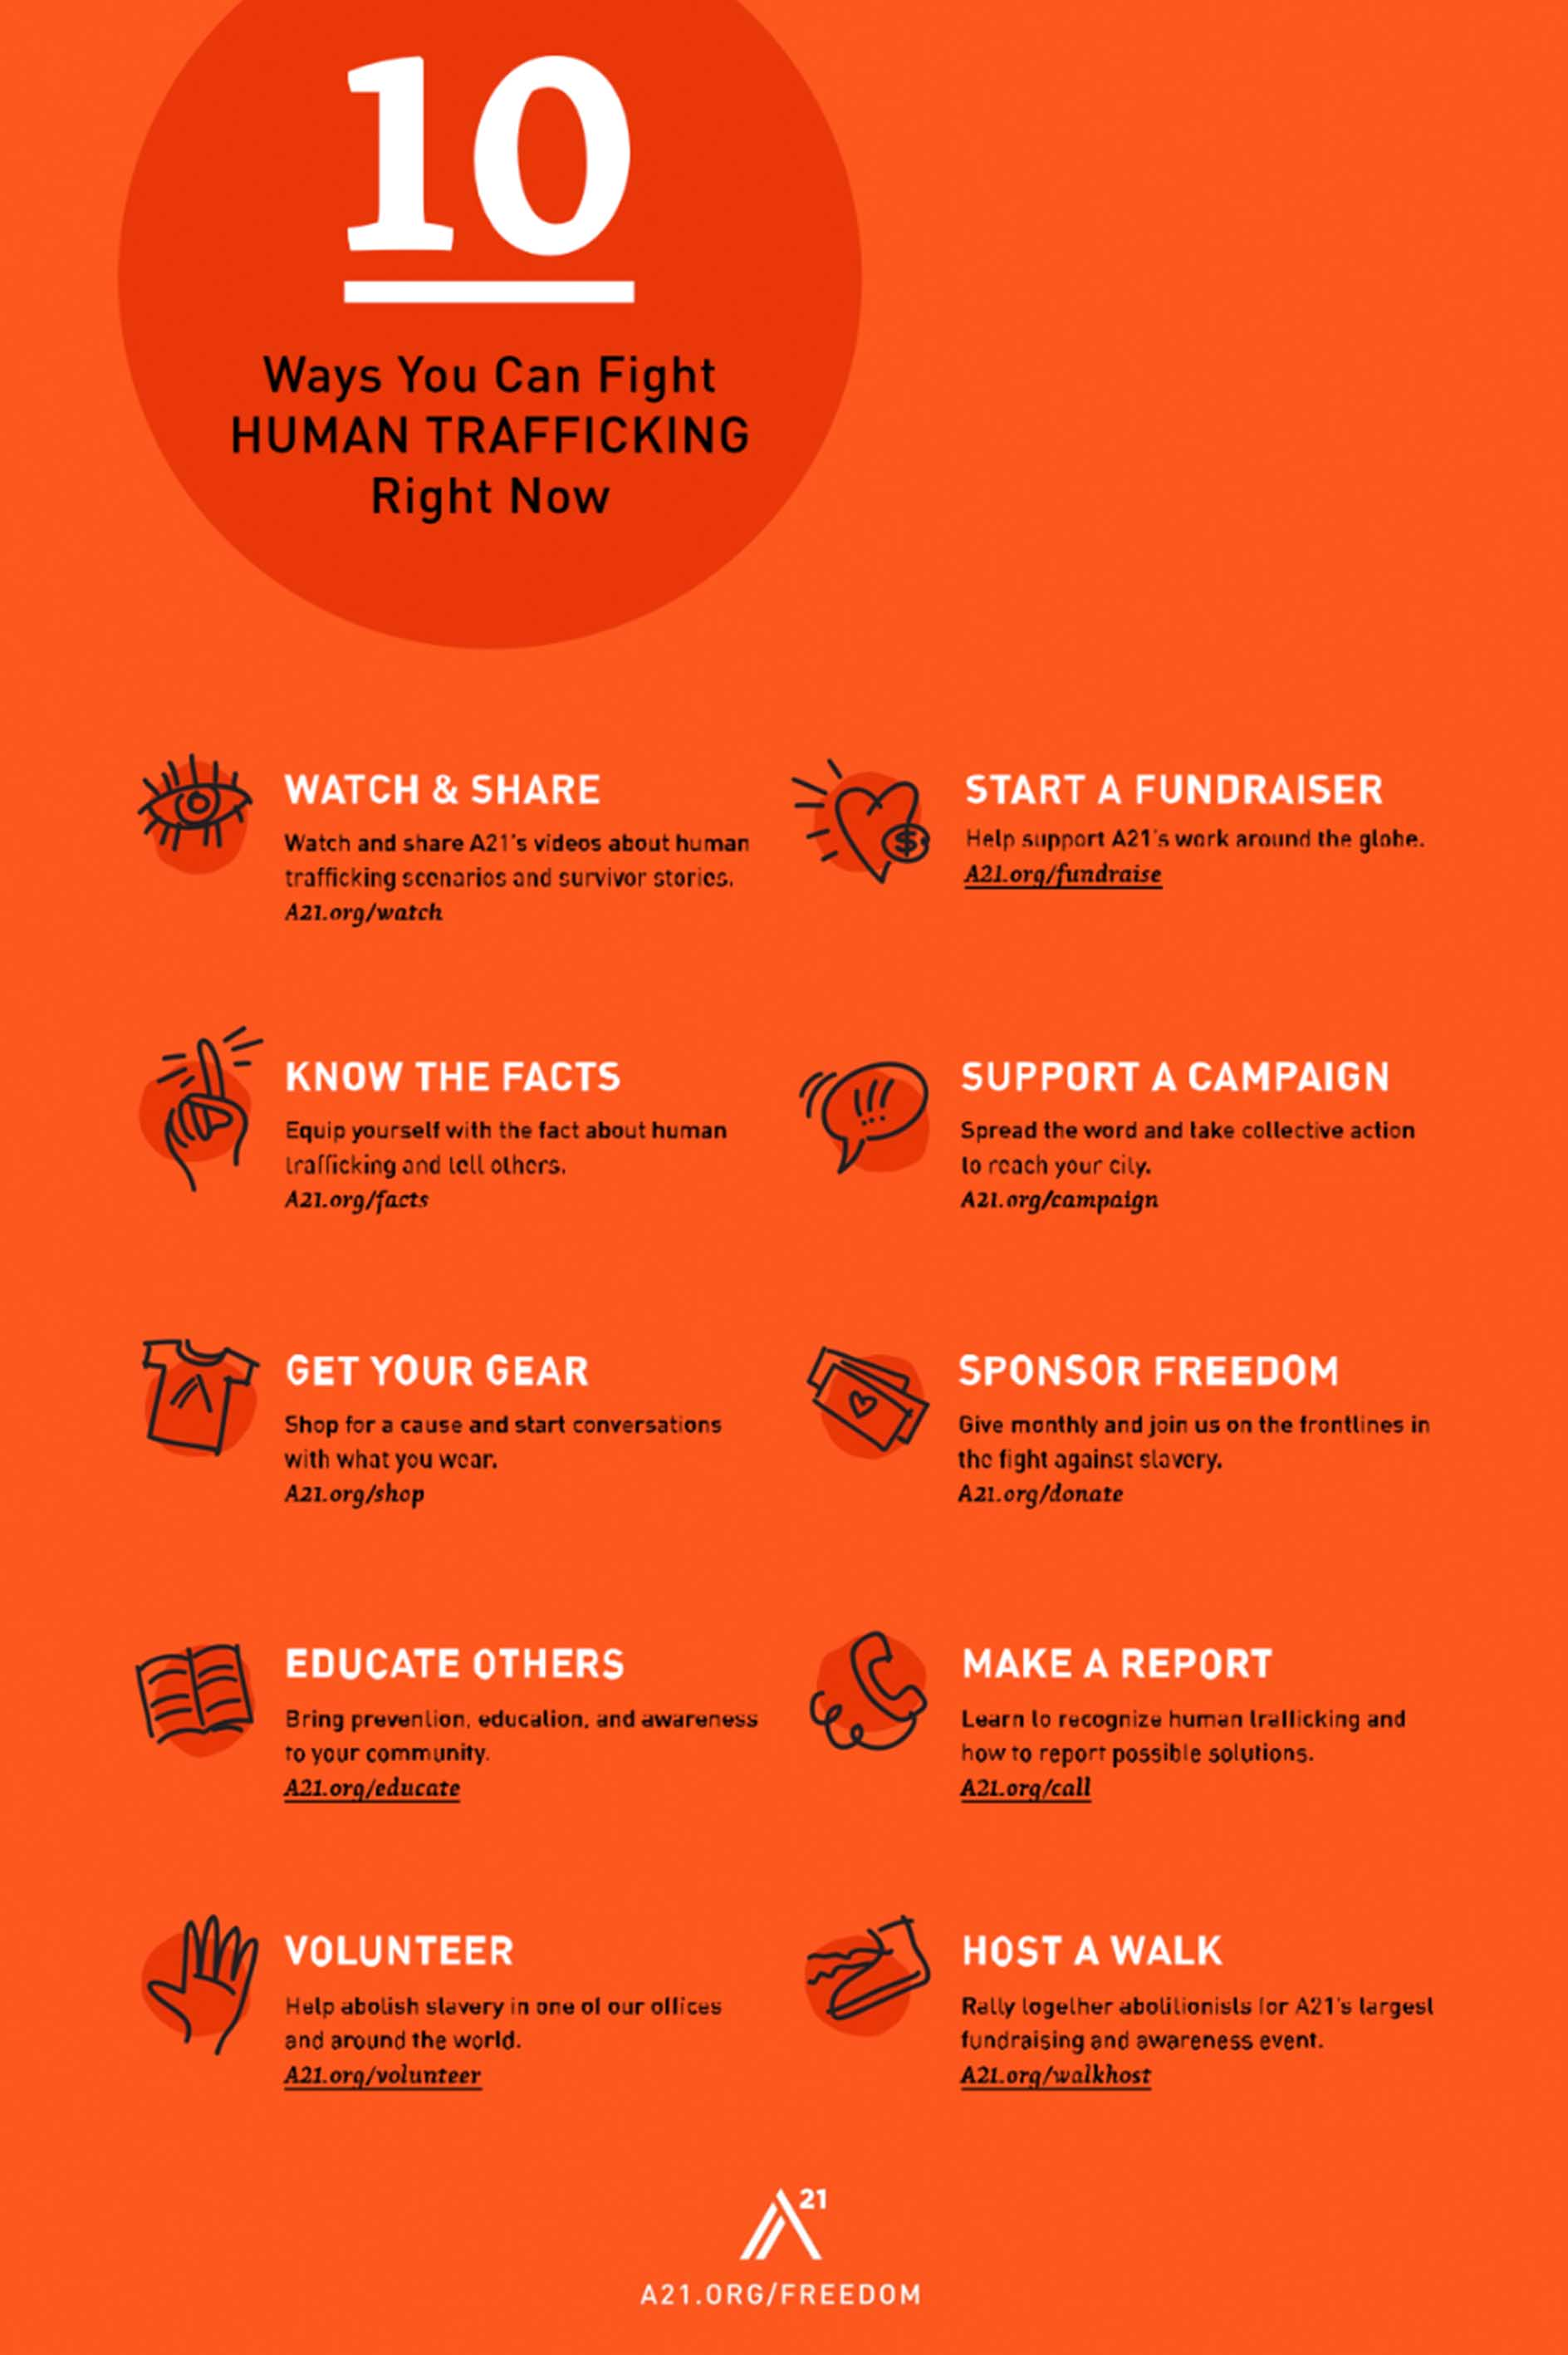 Poster 6: 10 Ways you can fight Human Trafficking right now. 1. Watch and Share. 2. Know the facts. 3. Get Your Gear. 4. Educate Others. 5. Volunteer. 6. Start a Fundraiser. 7. Support A Campaign. 8. Sponsor Freedom. 9. Make A Report. 10. Host A Walk.